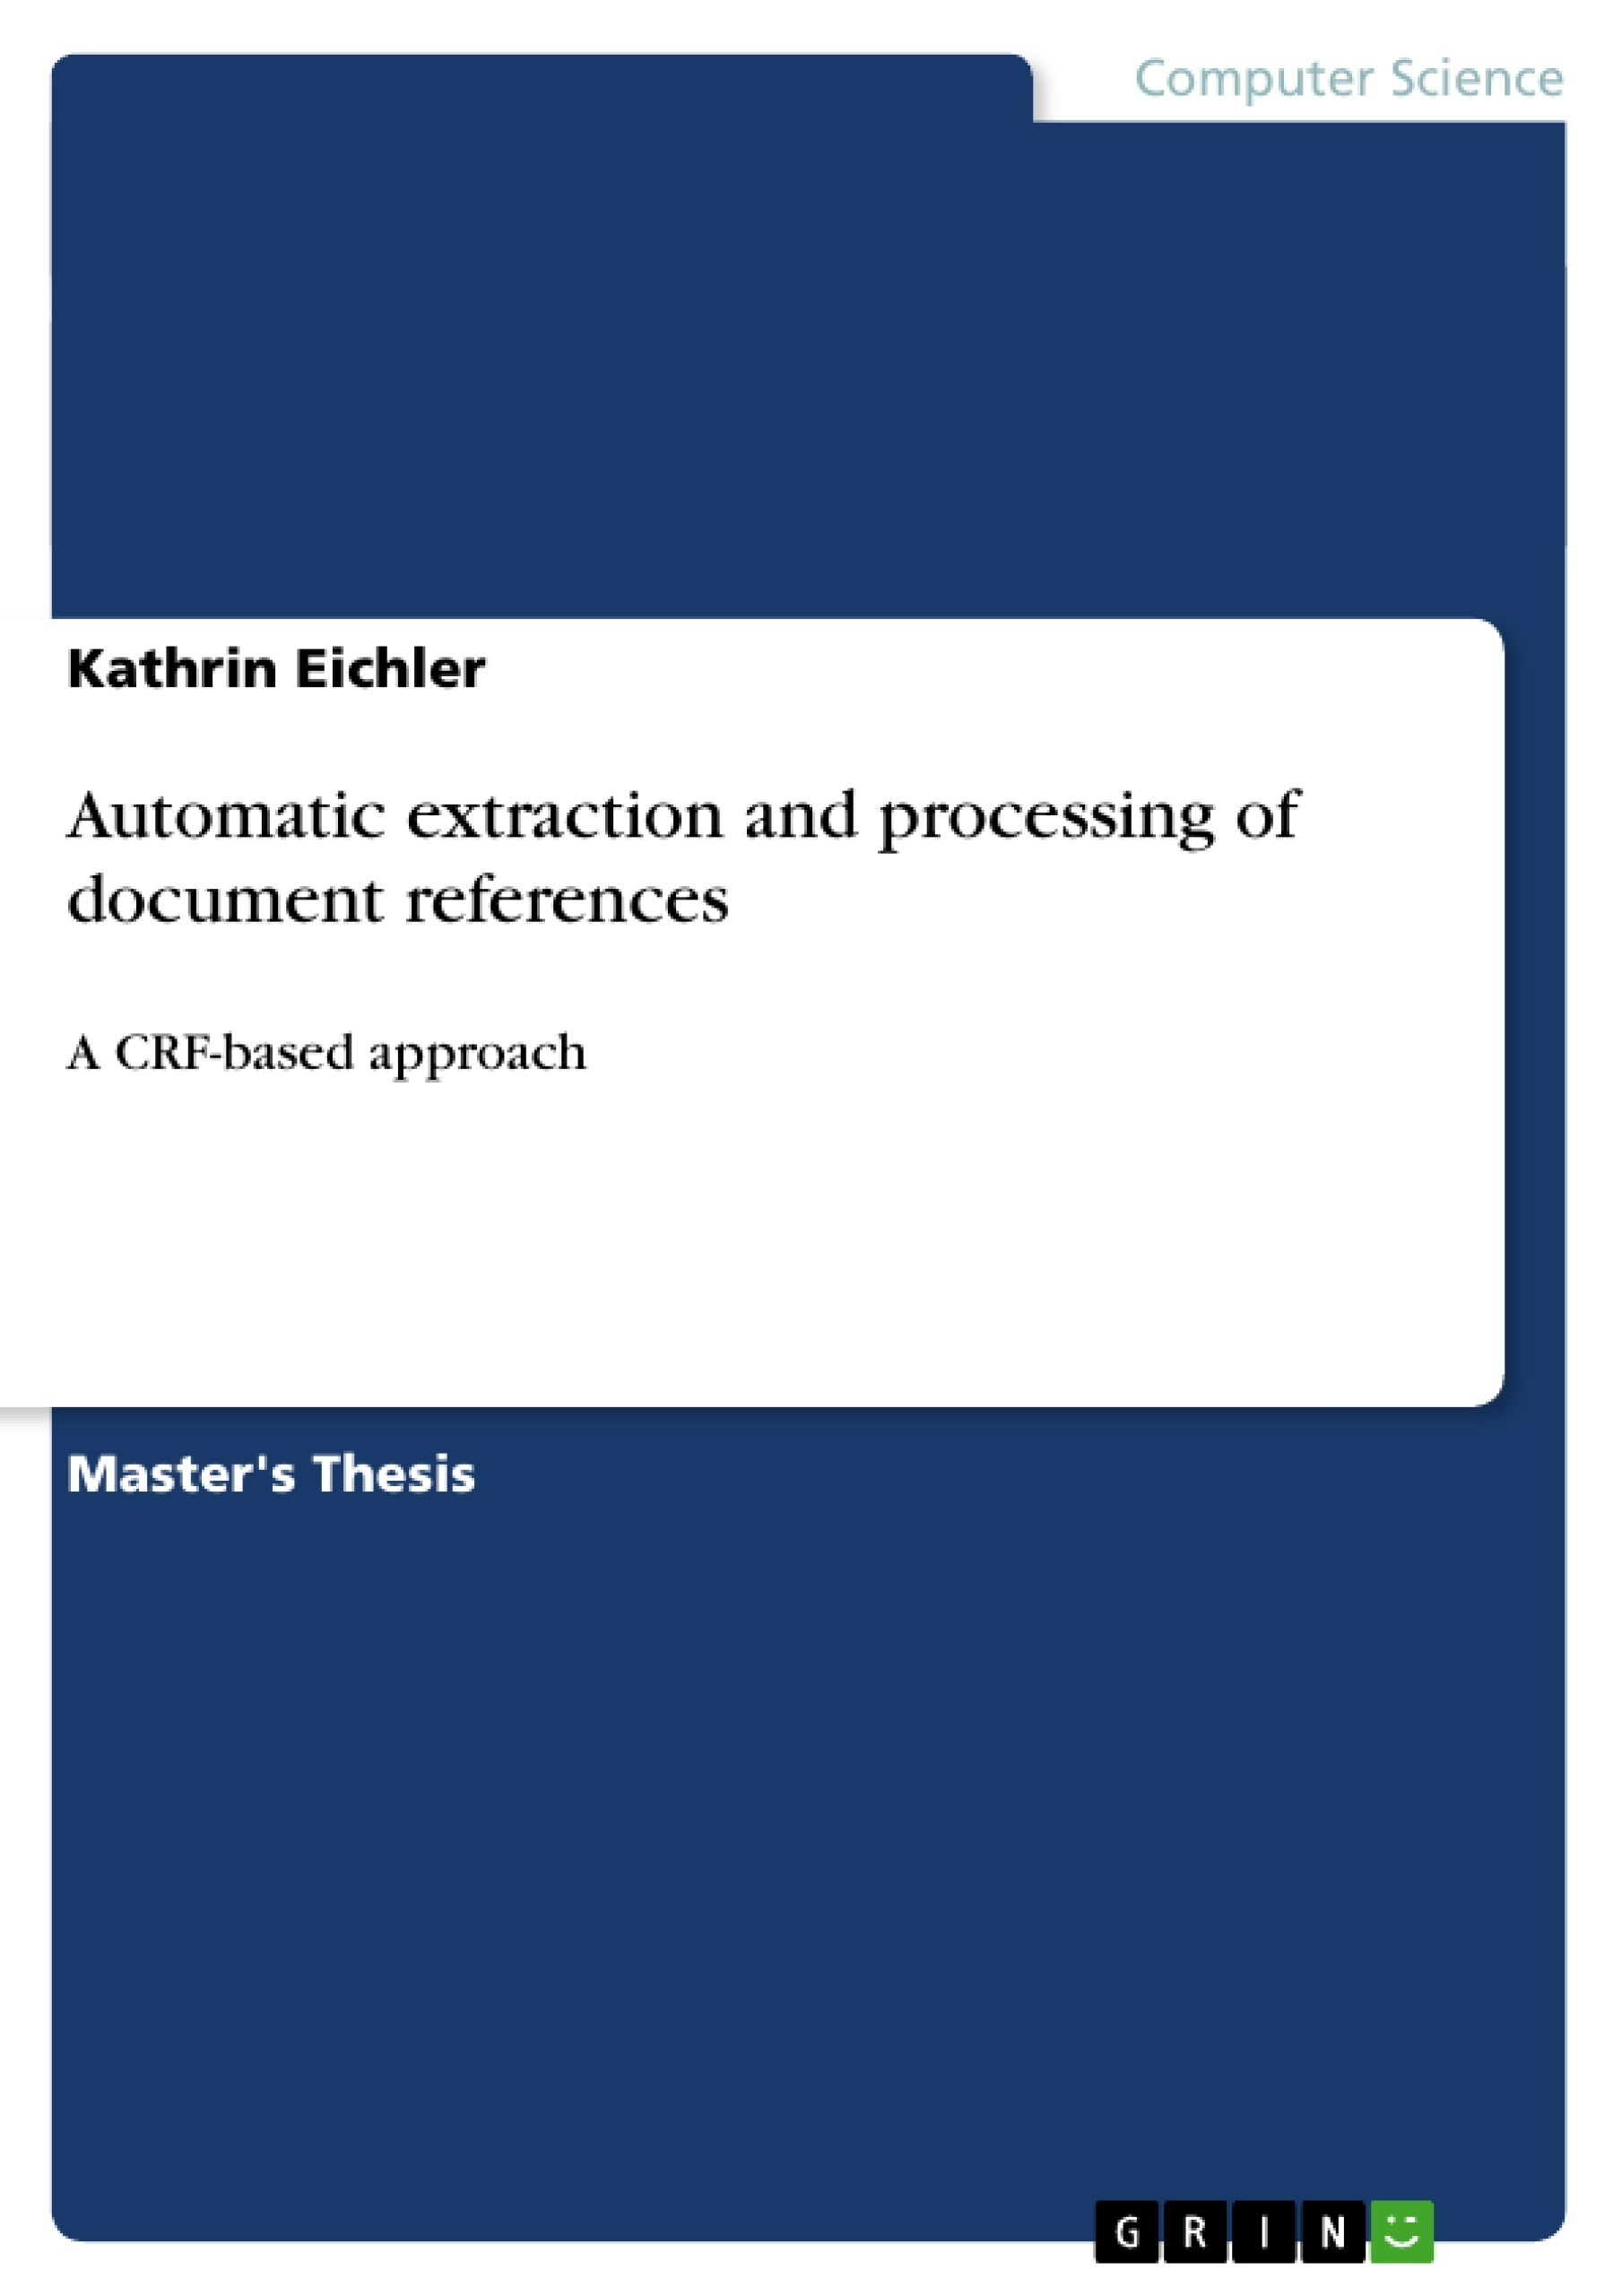 Title: Automatic extraction and processing of document references